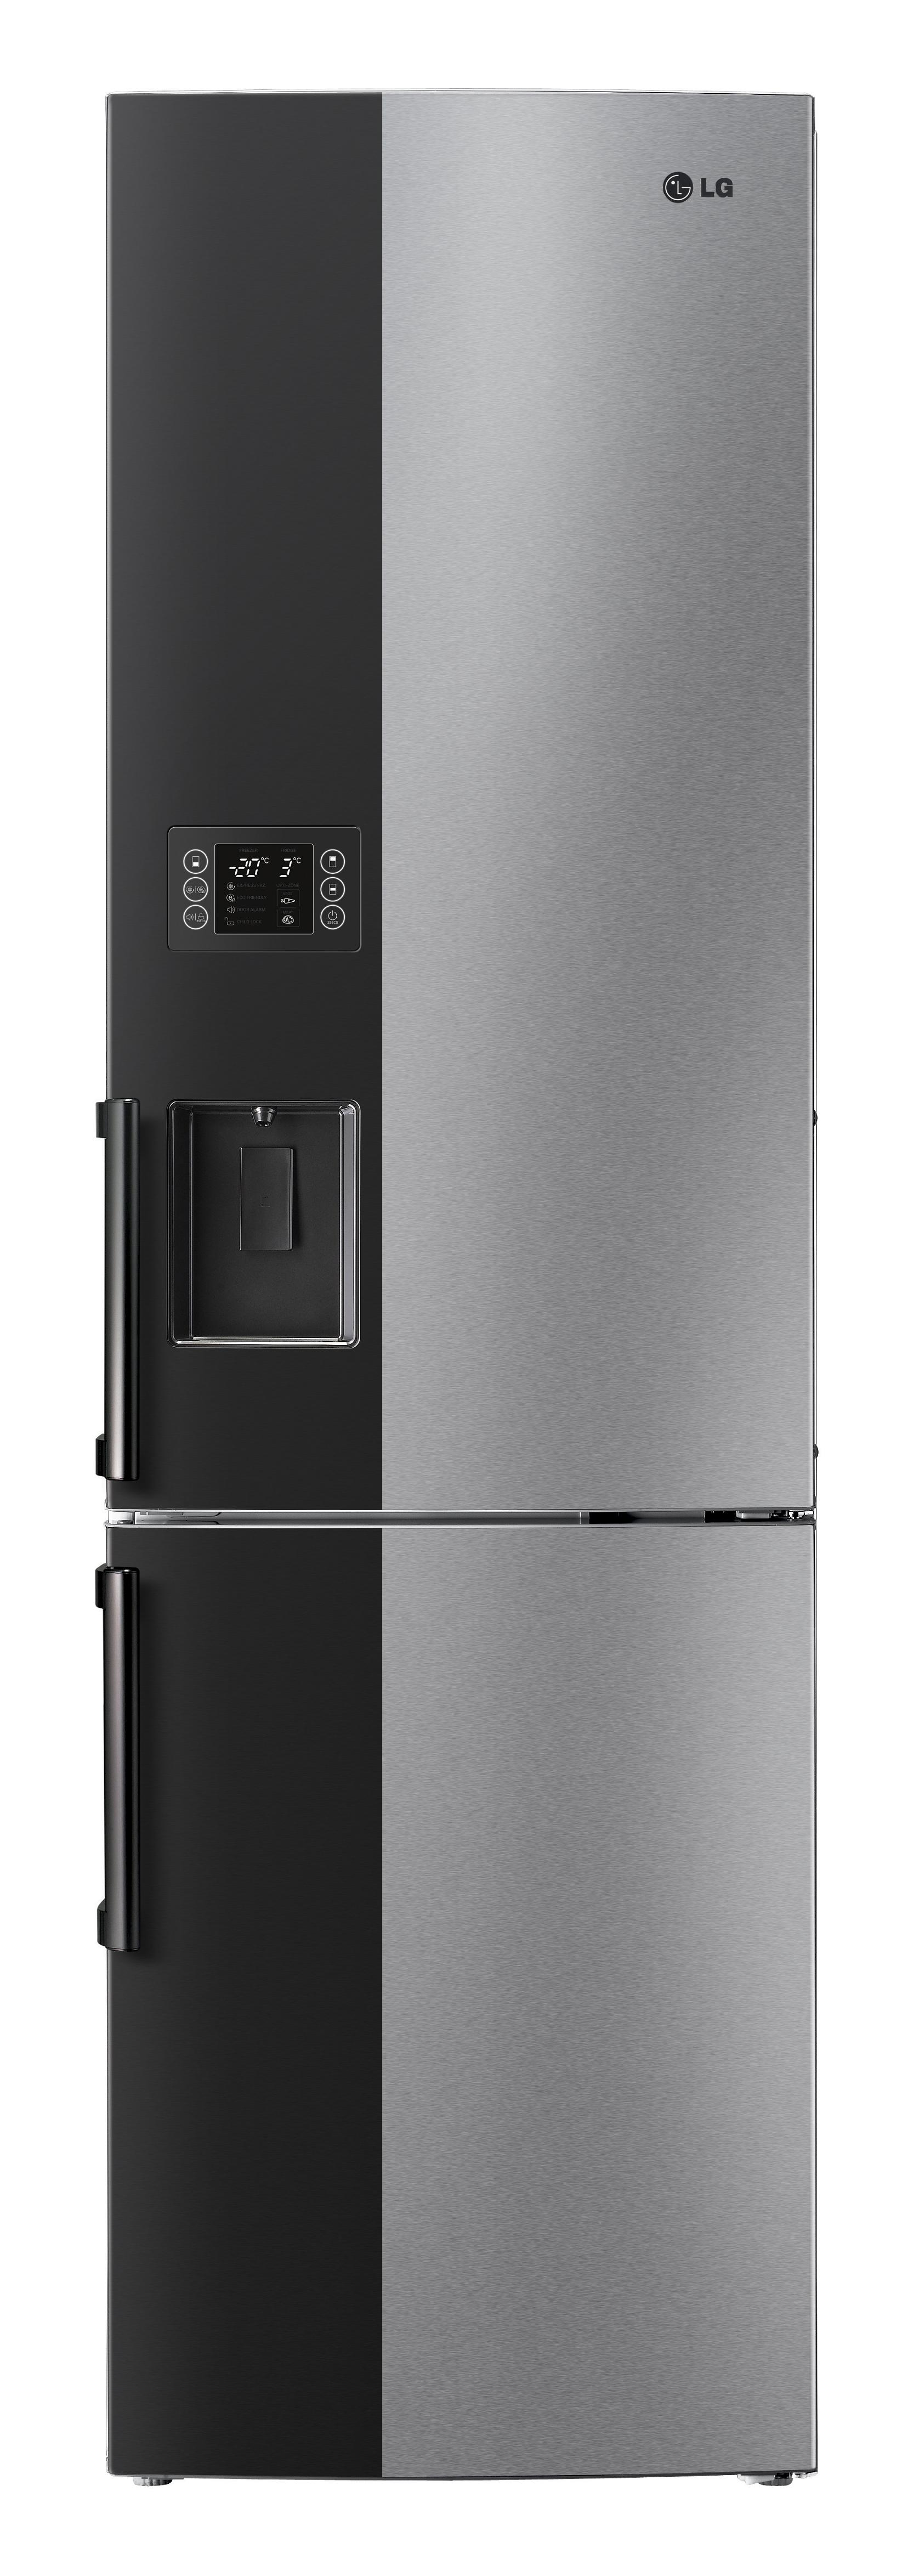 Front view of the LG Large-Capacity Bottom-Freezer refrigerator